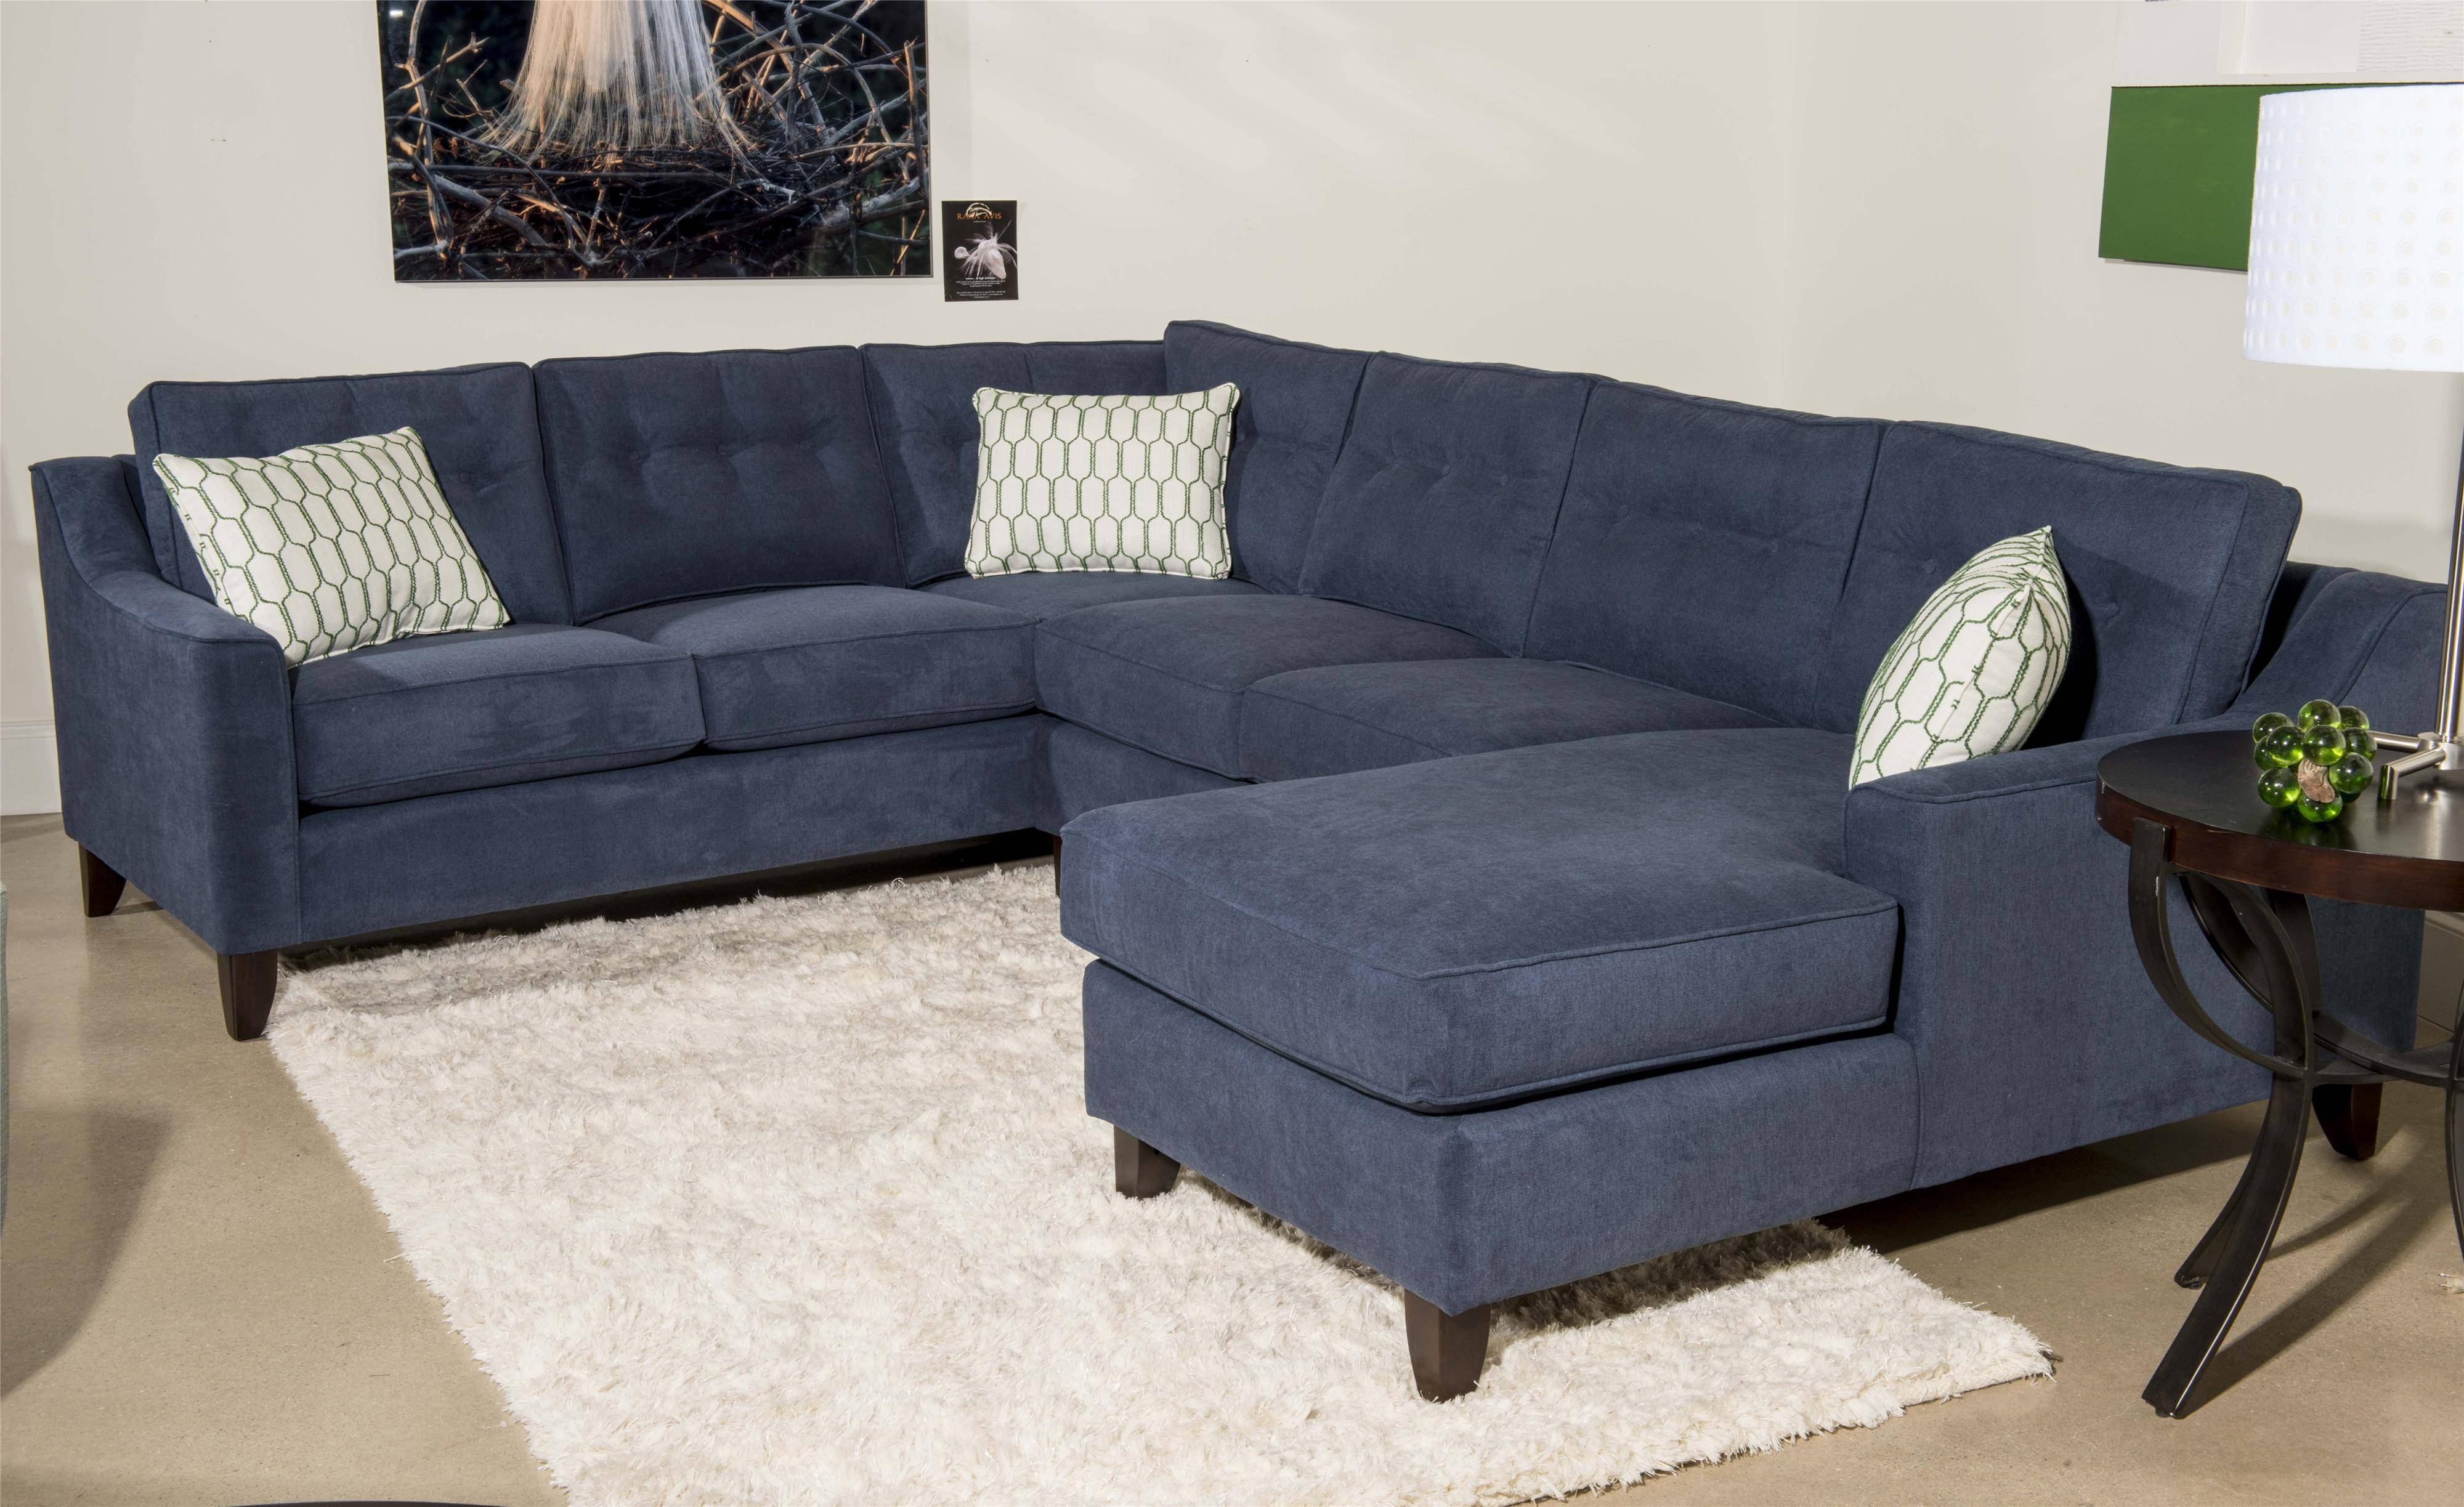 Contemporary 3 Piece Sectional Sofa With Chaiseklaussner inside Tufted Sectional Sofa Chaise (Image 2 of 25)